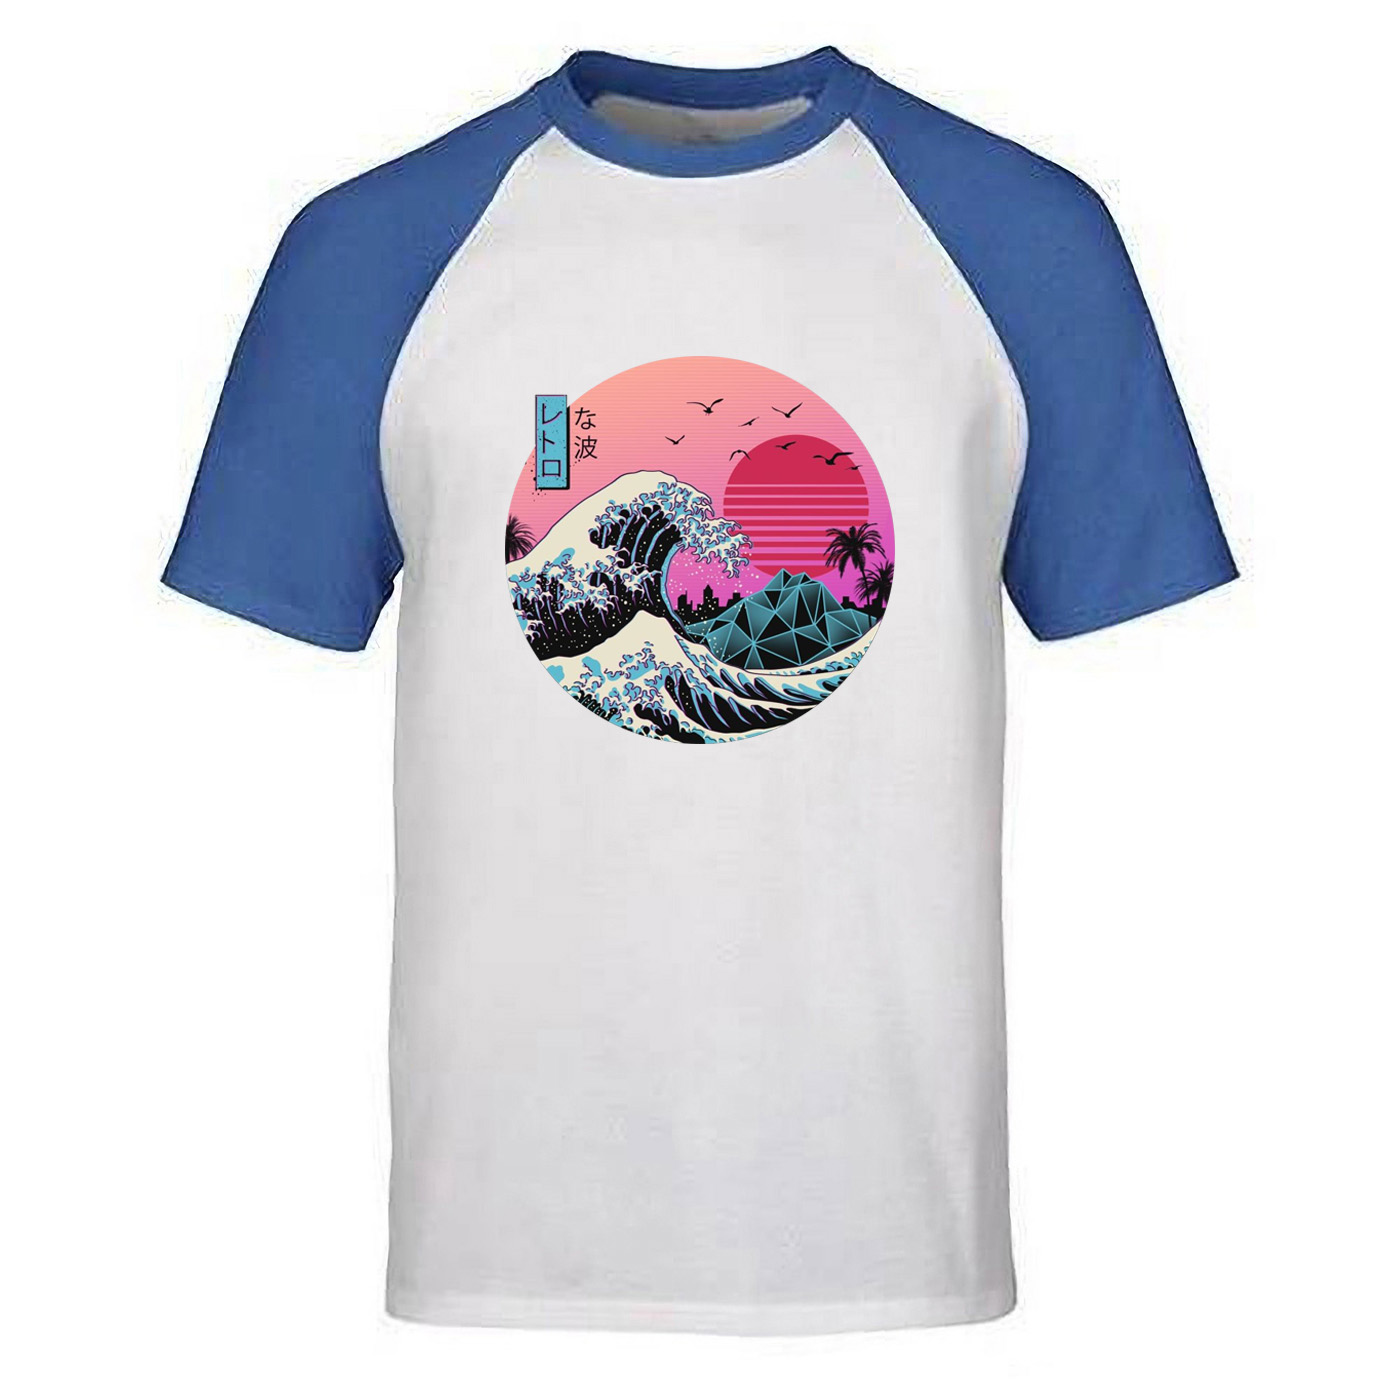 Tshirt Men The Great Retro Wave Japan Anime Vaporwave T Shirt Tshirts Summer Tops Classic Painting Short Sleeve Harajuku Tee image